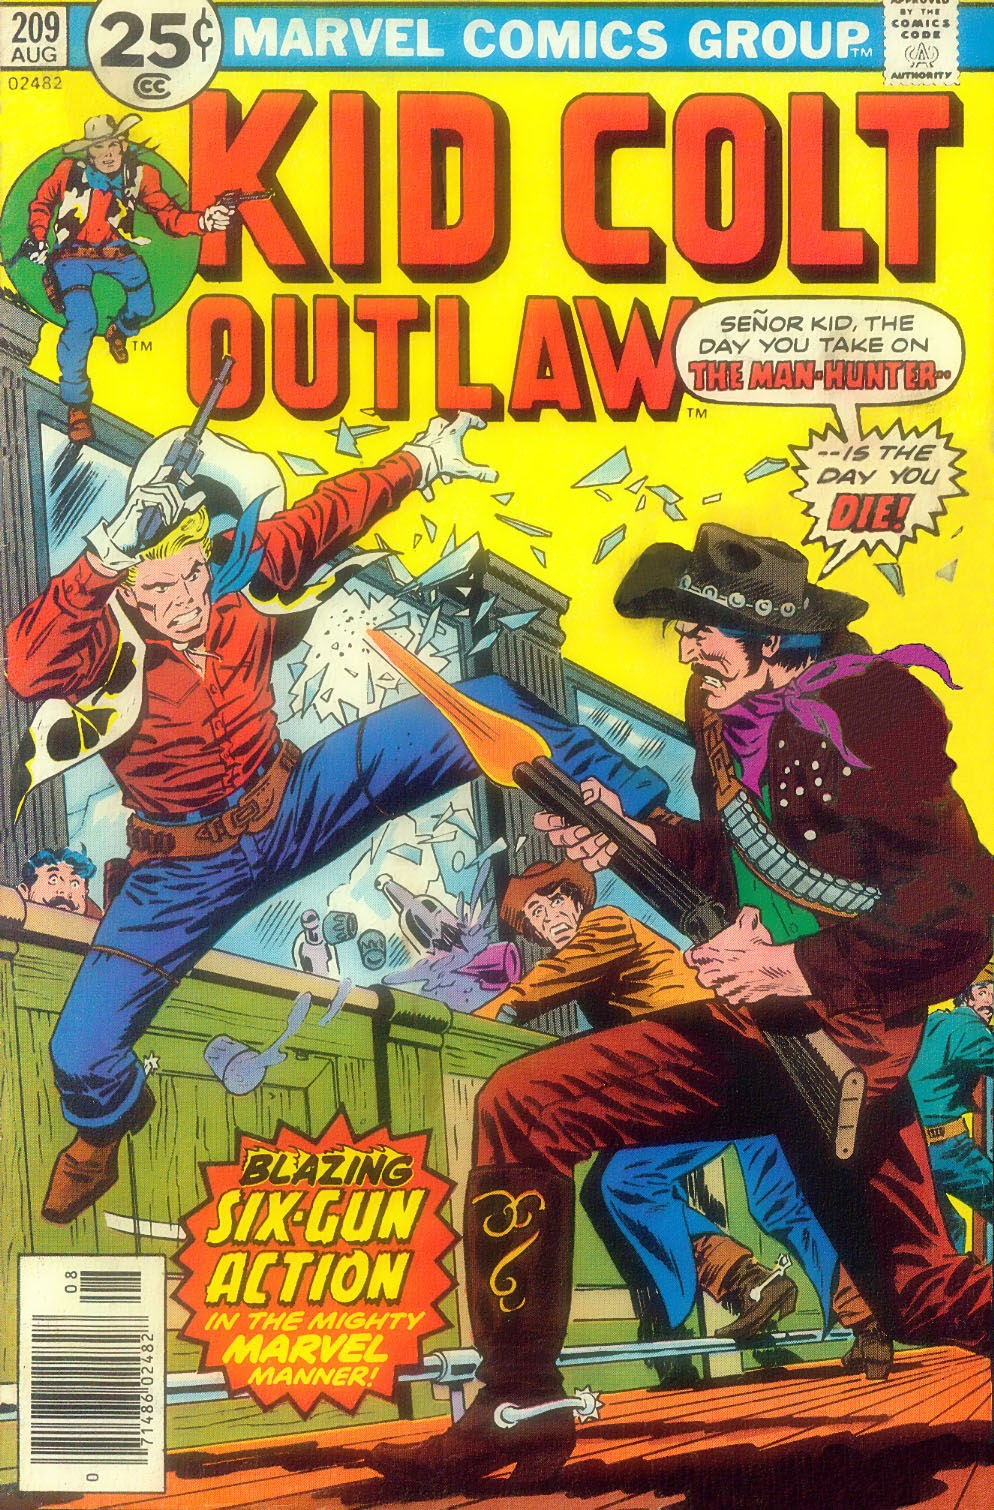 Kid Colt Outlaw issue 209 - Page 1